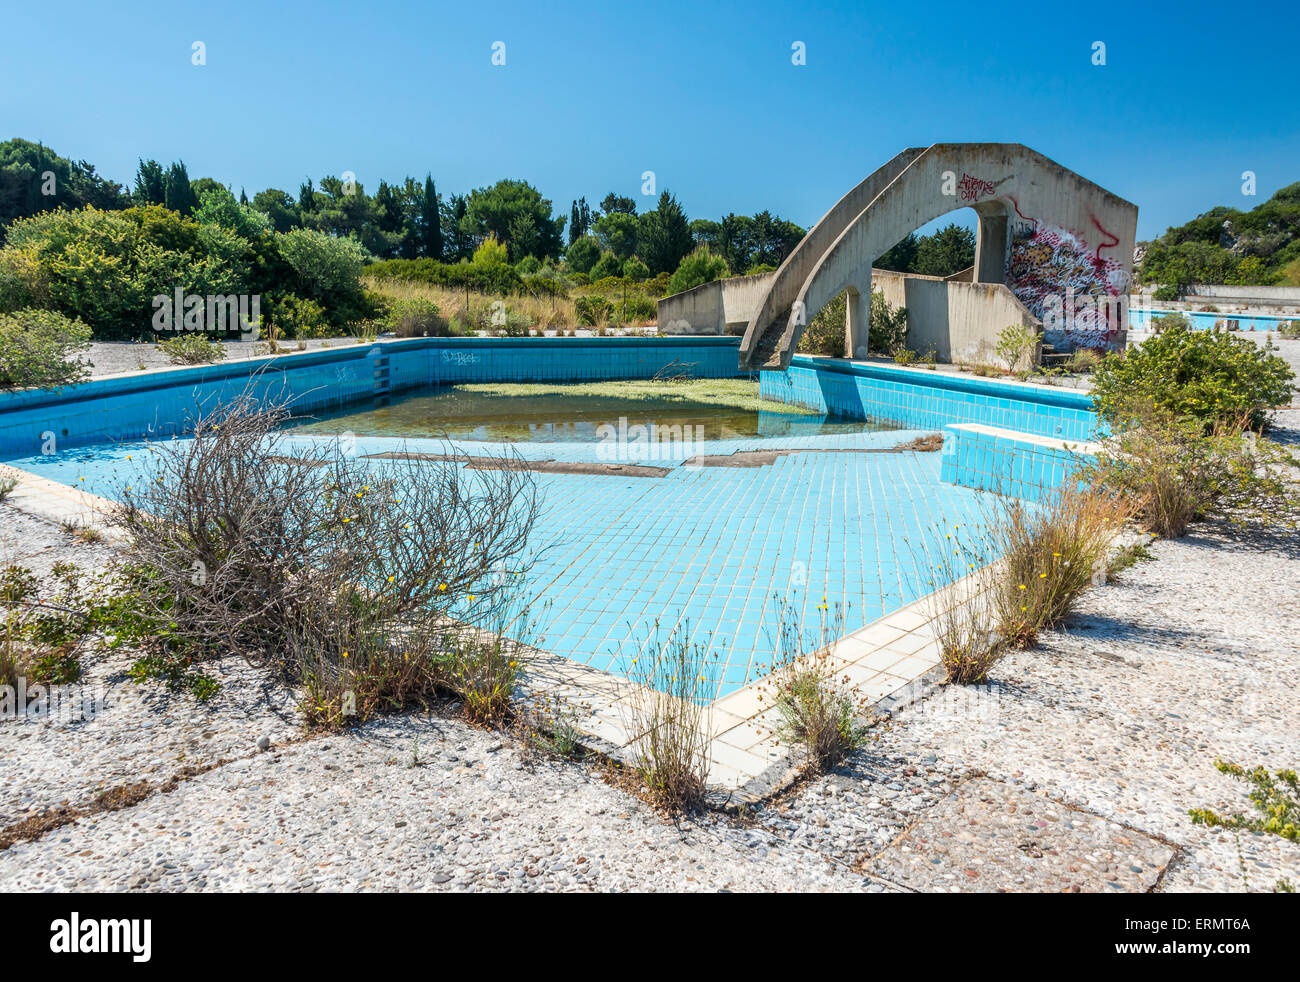 an abandoned lido complex on the island of rhodes in Greece where the swimming pools have filled with rain water - Stock Image